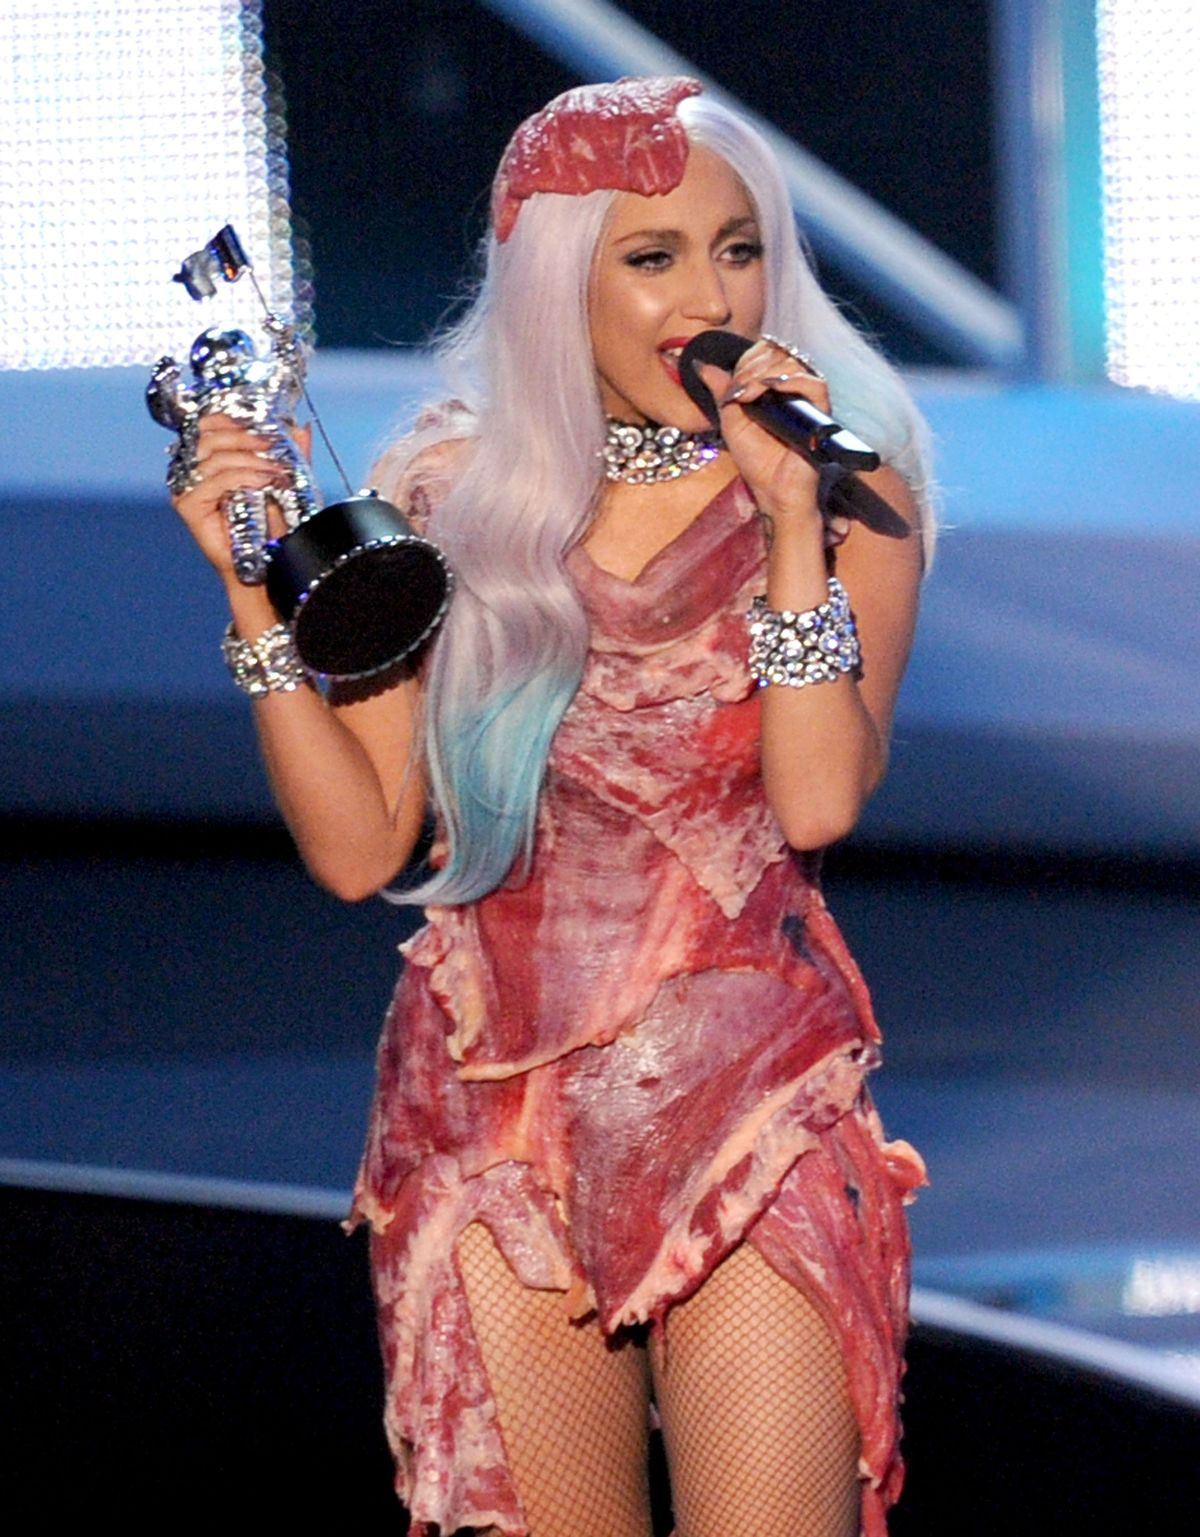 LOS ANGELES, CA - SEPTEMBER 12: Singer Lady Gaga accepts the Video of the Year award onstage during the 2010 MTV Video Music Awards at NOKIA Theatre L.A. LIVE on September 12, 2010 in Los Angeles, California. (Photo by Kevin Winter/Getty Images)